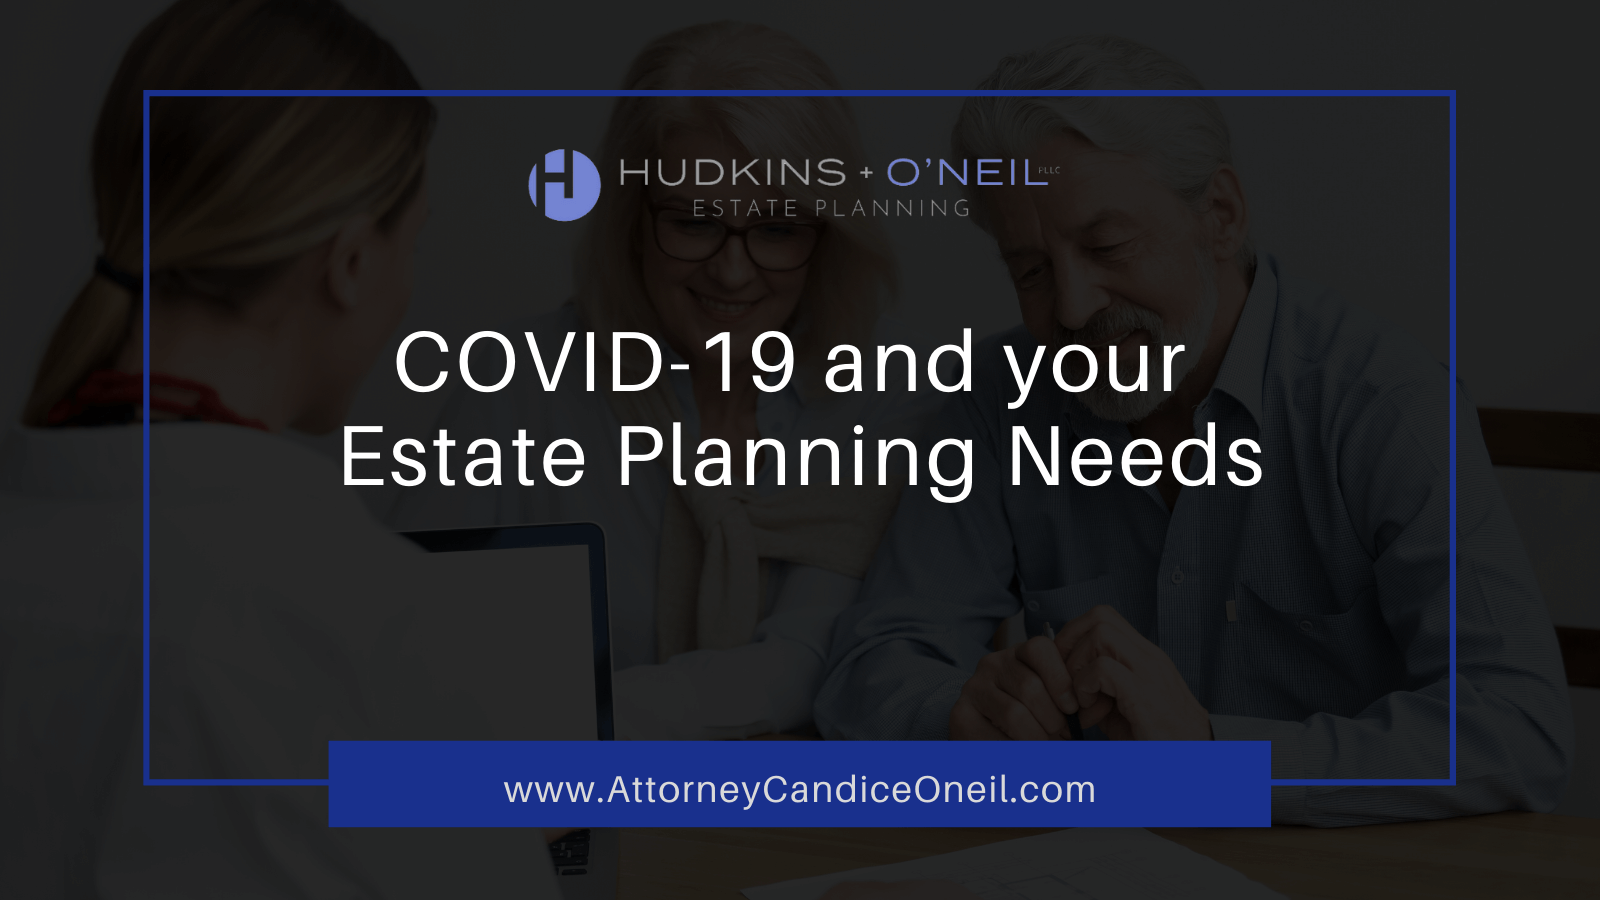 COVID-19 and your Estate Planning Needs | Attorney Candice O'Neil